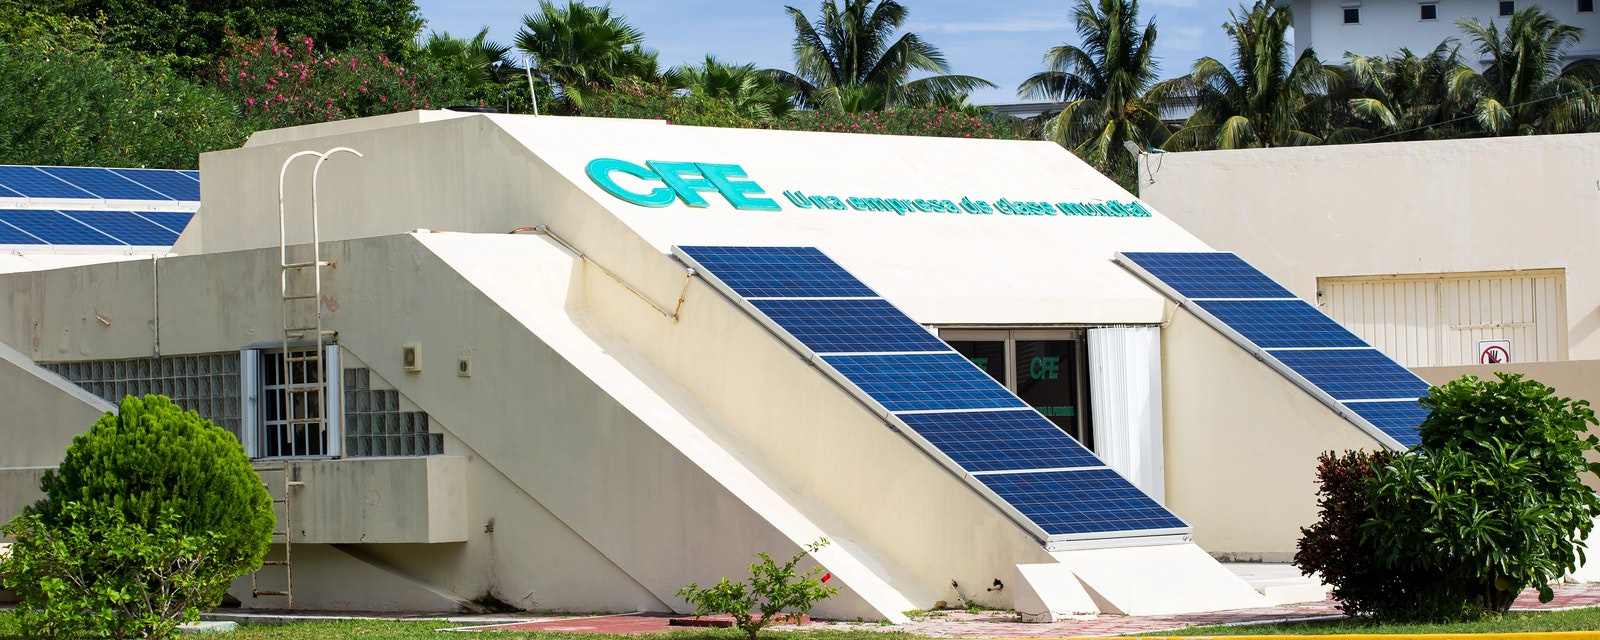 Cancun,,Mexico,-,12,January,2015:,Cfe,-,Federal,Electricity